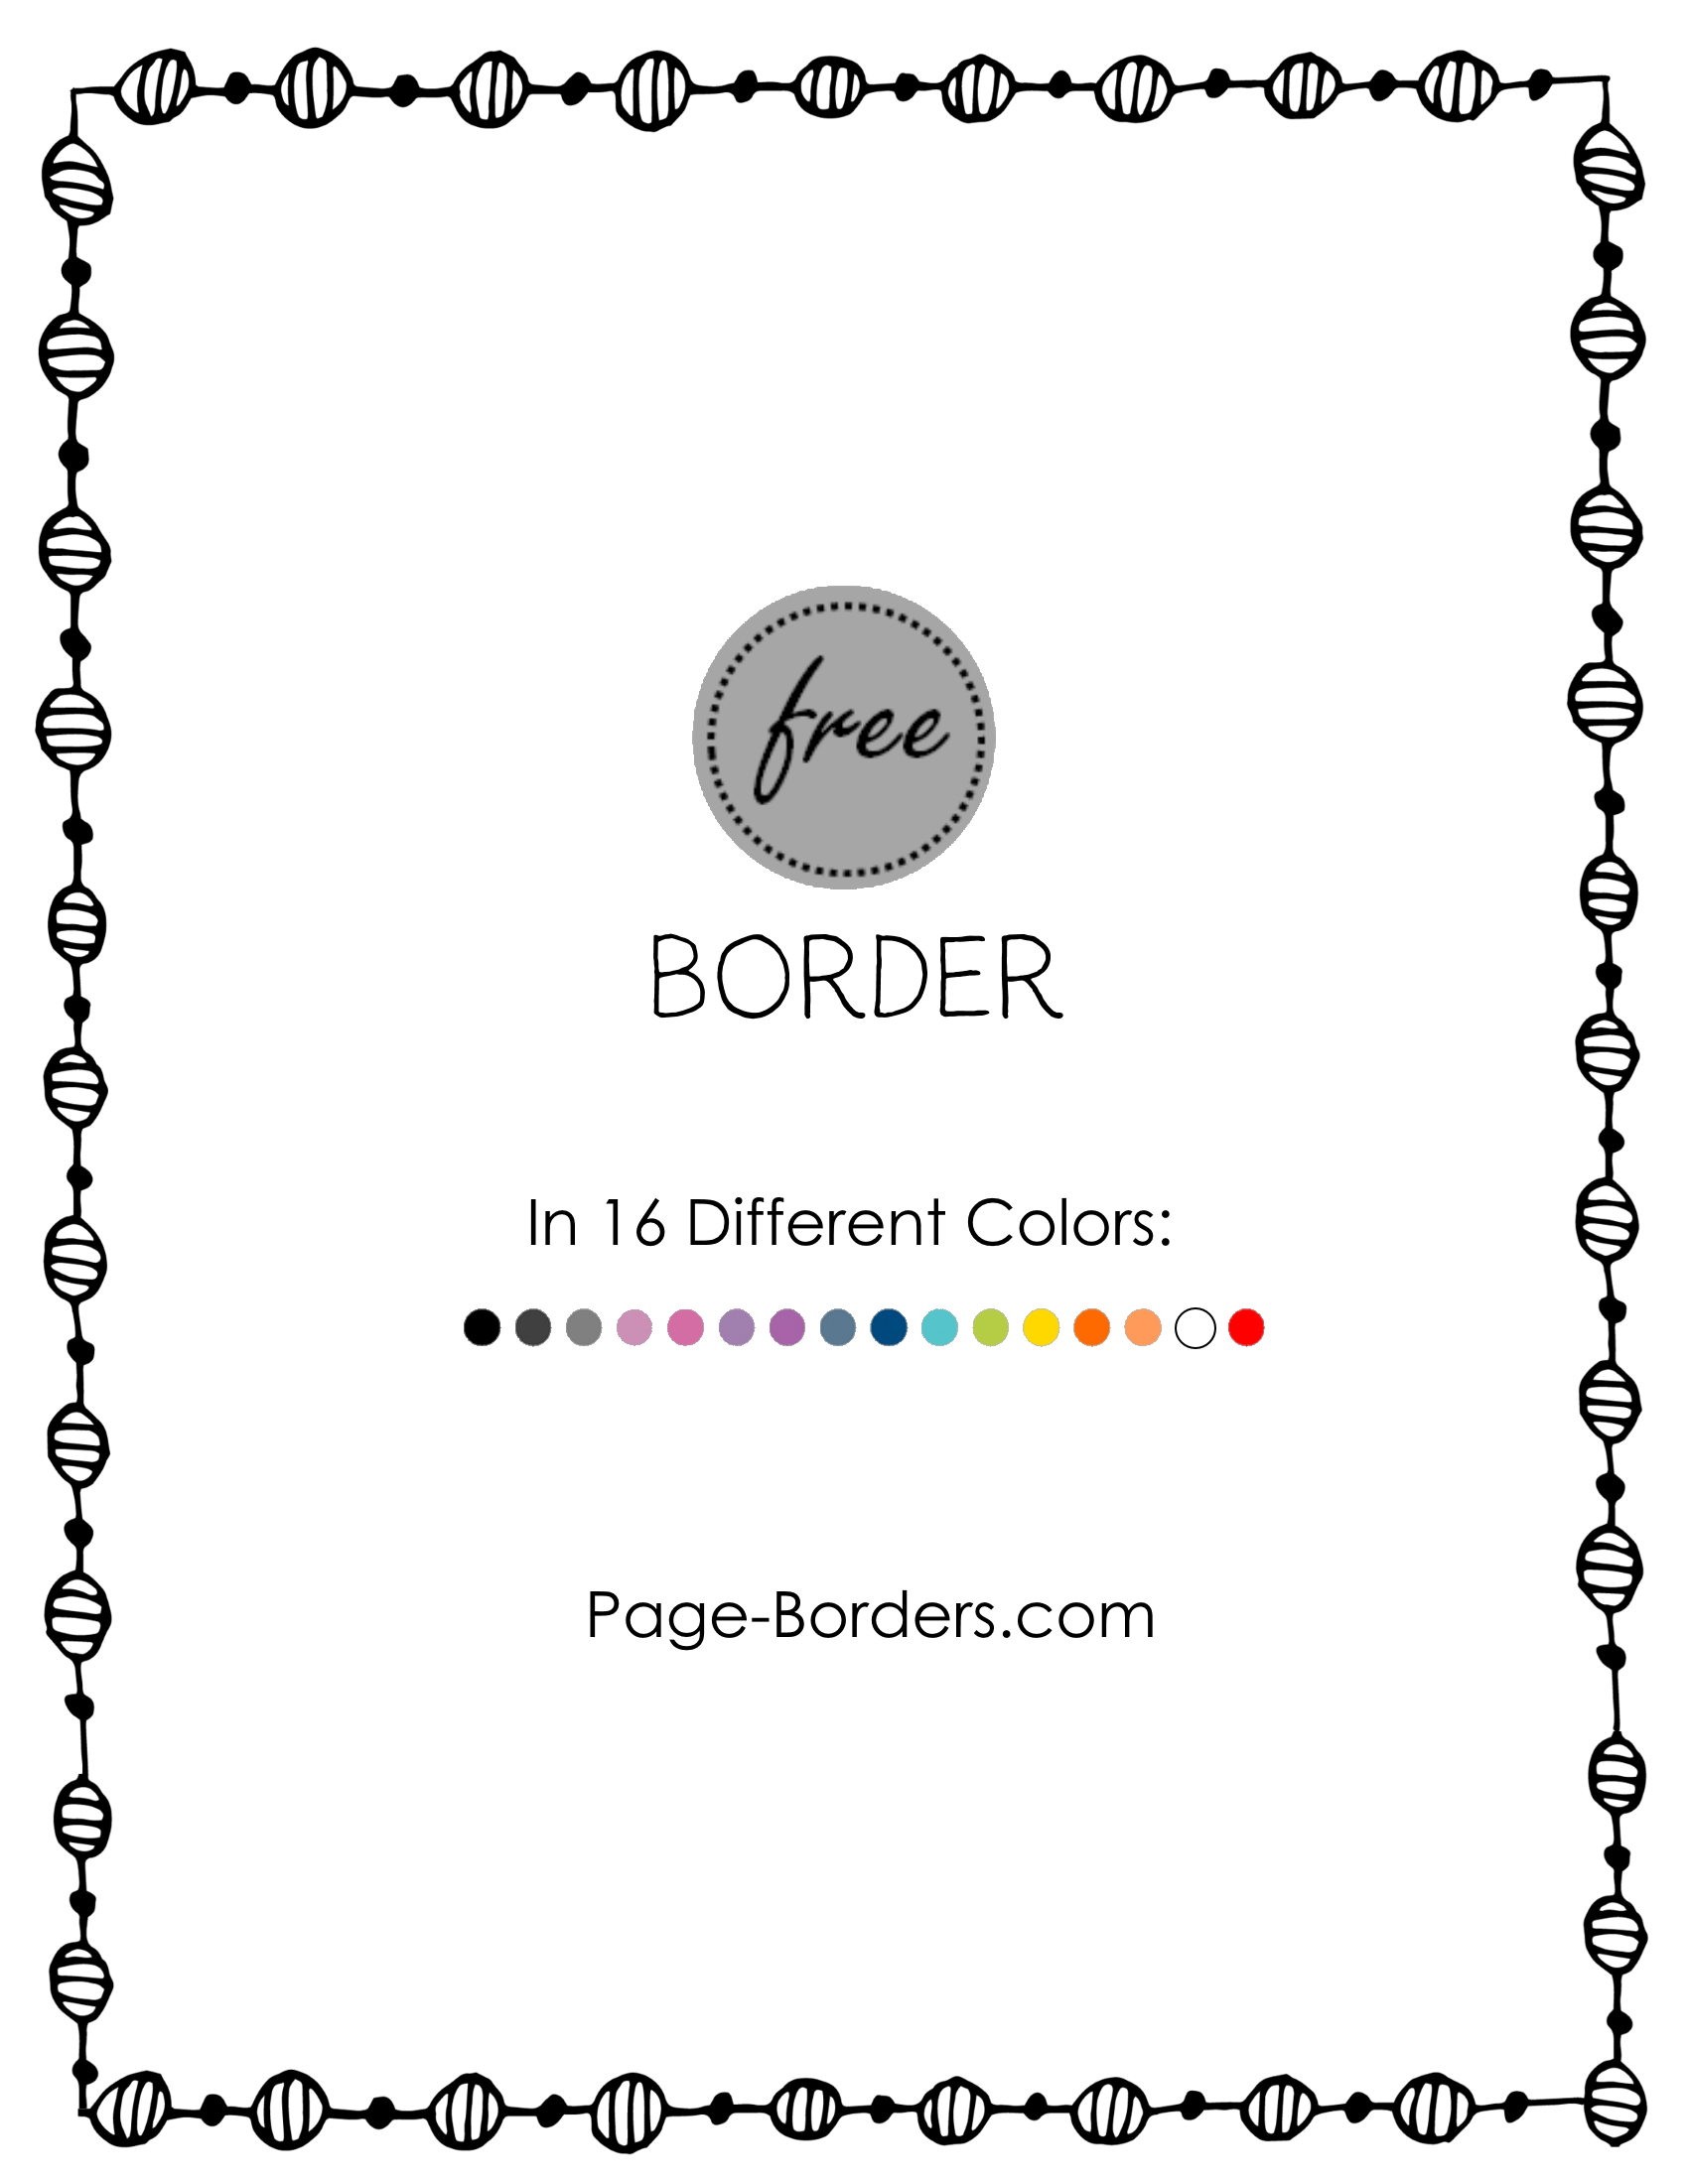 Square clipart doodle. Free border customize online